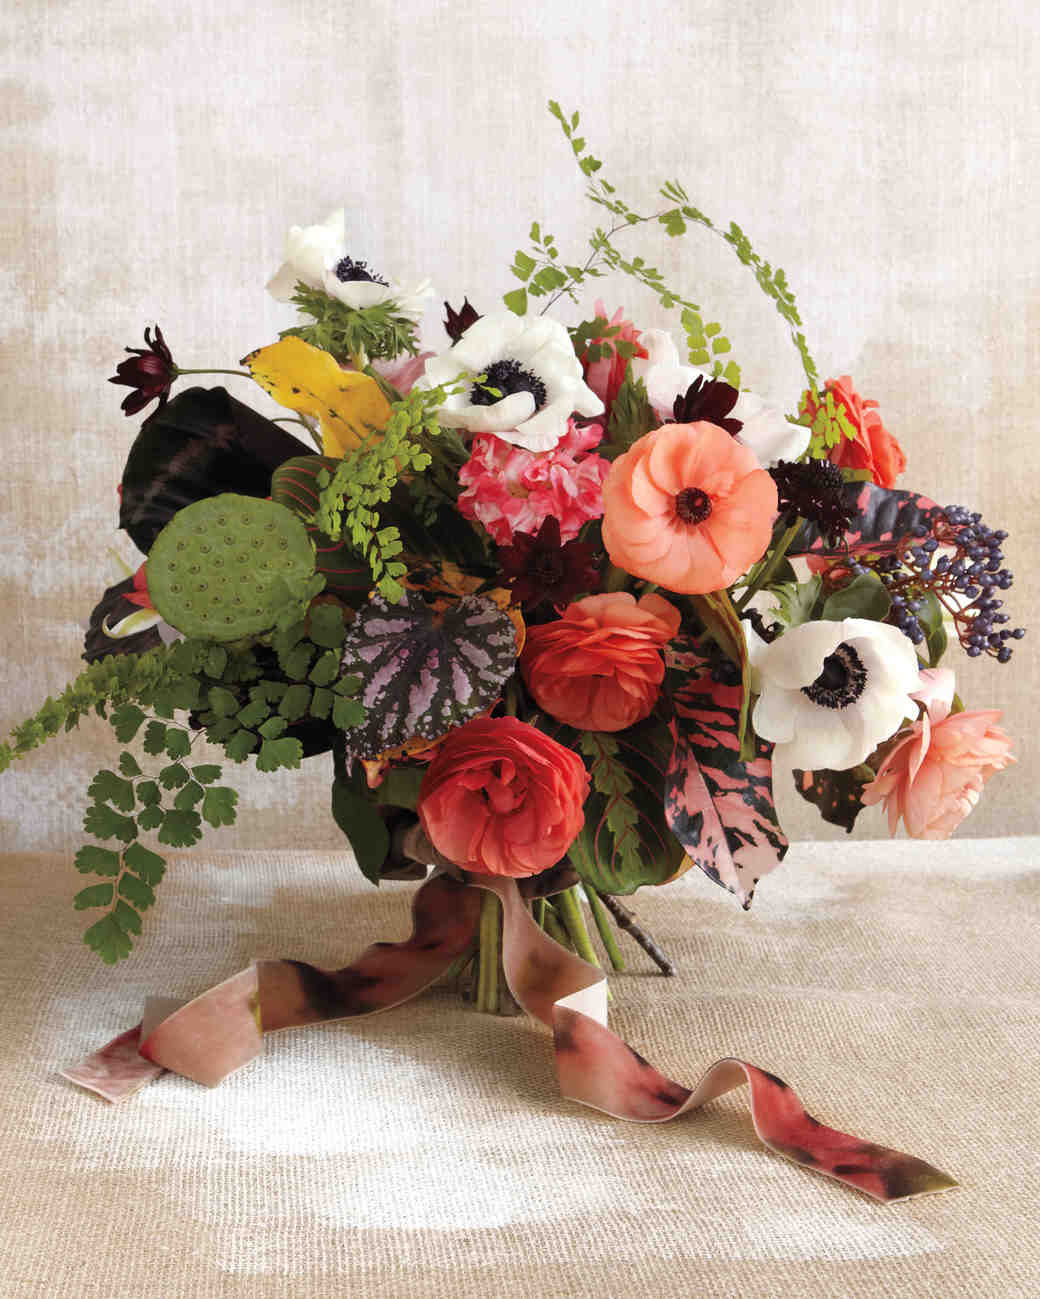 bouquet-9634-mwd110013.jpg